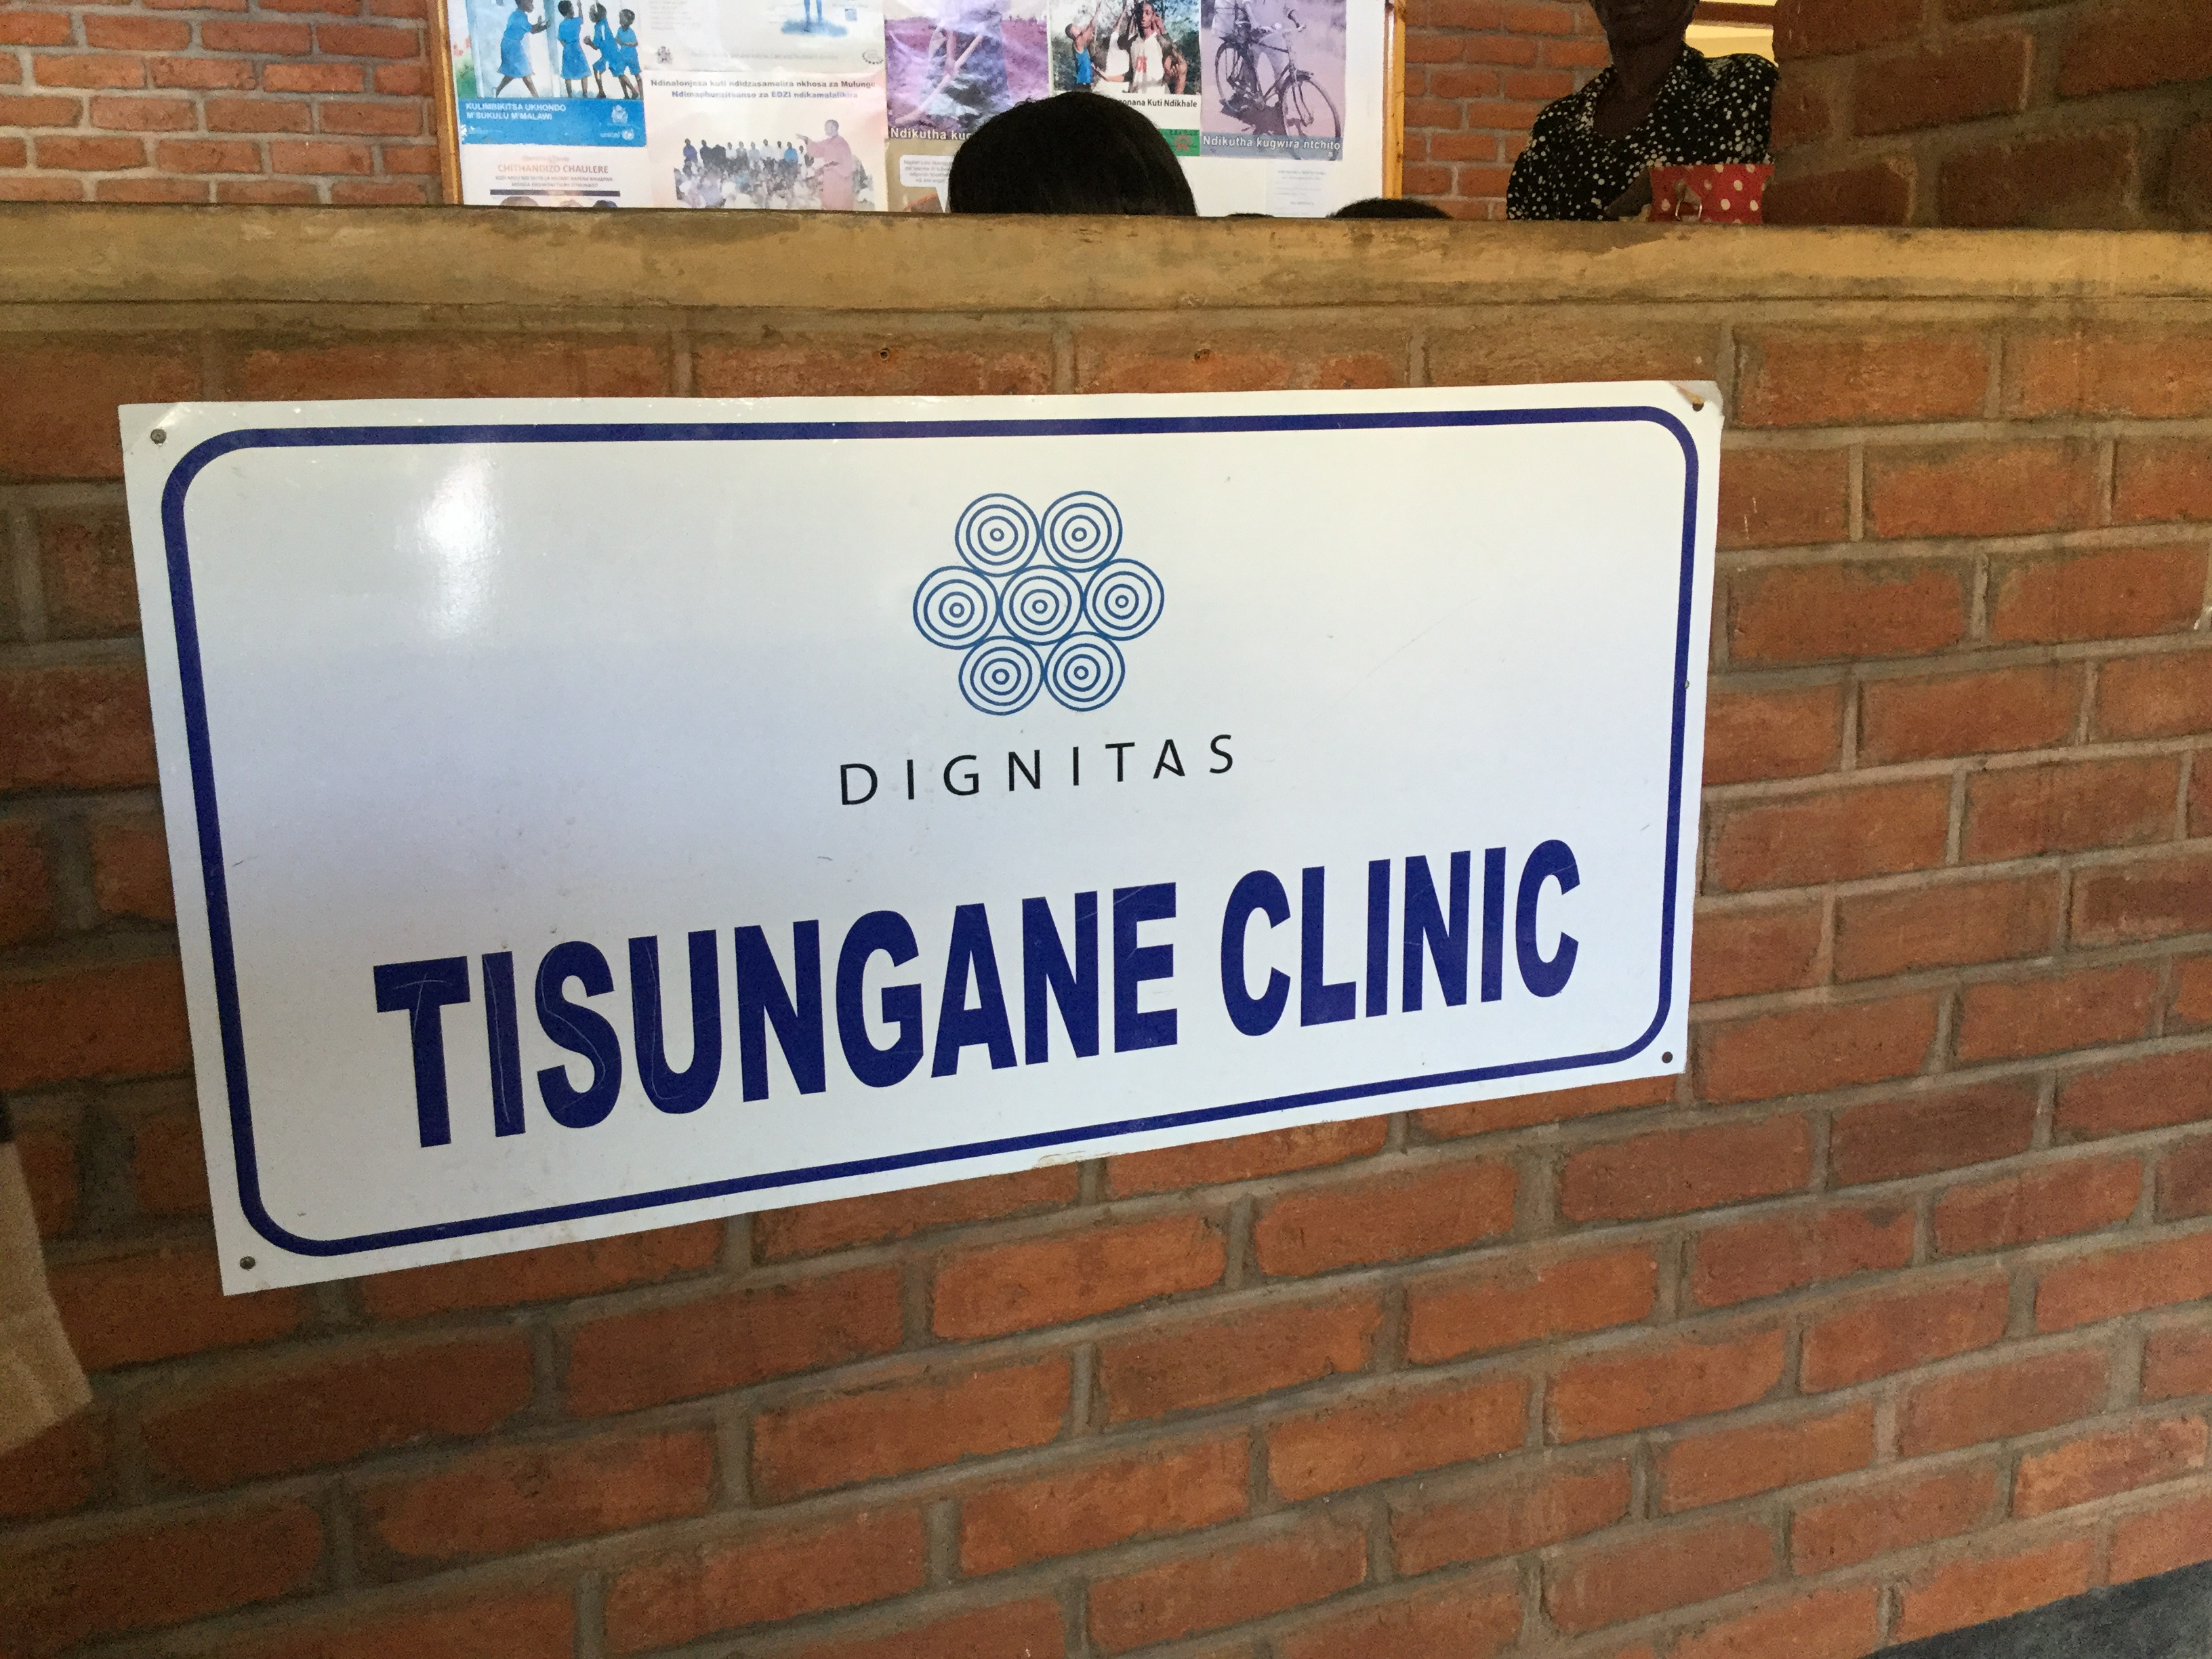 A Visit to the Tisungane Clinic